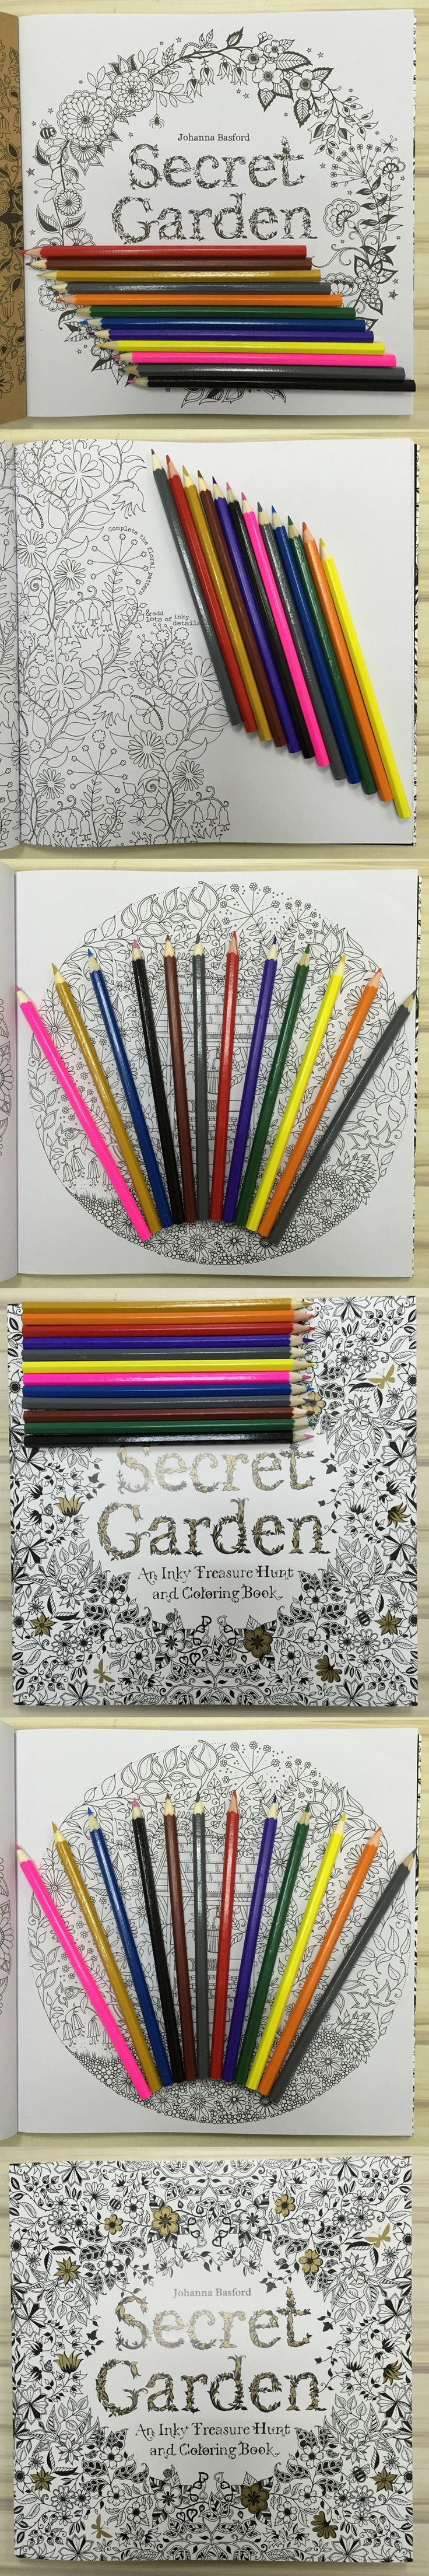 New Secret Garden Hand Drawn Book 24 The Root Color Pencil Adult Coloring